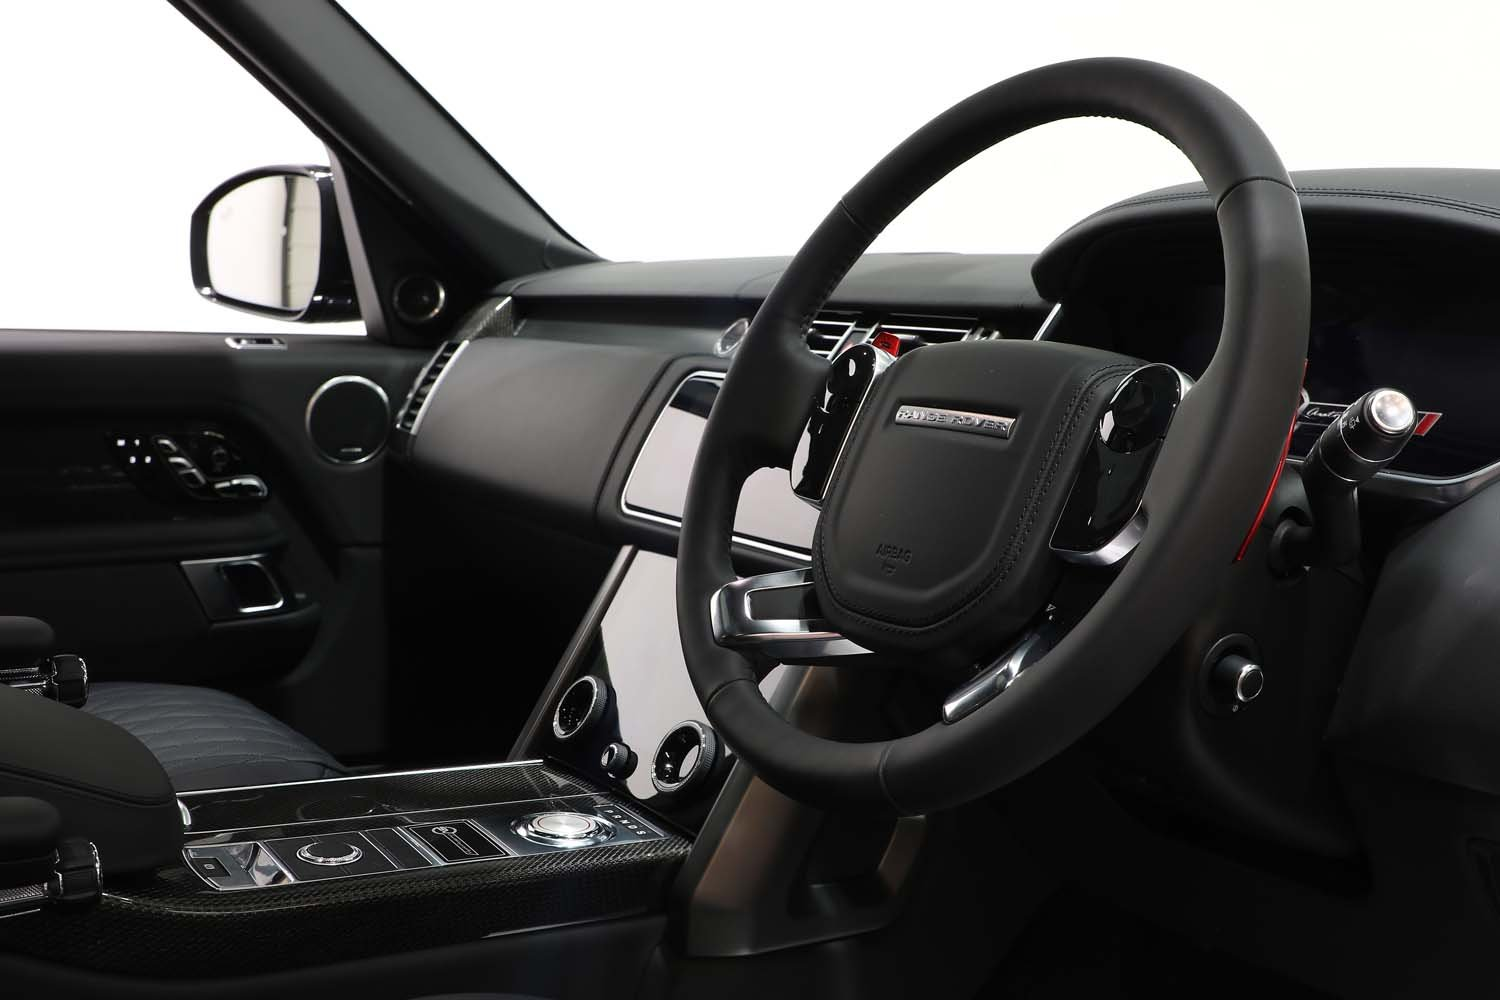 2019 19 RANGE ROVER 5.0 V8 SVAUTOBIOGRAPHY DYNAMIC AUTO  For Sale (picture 4 of 6)